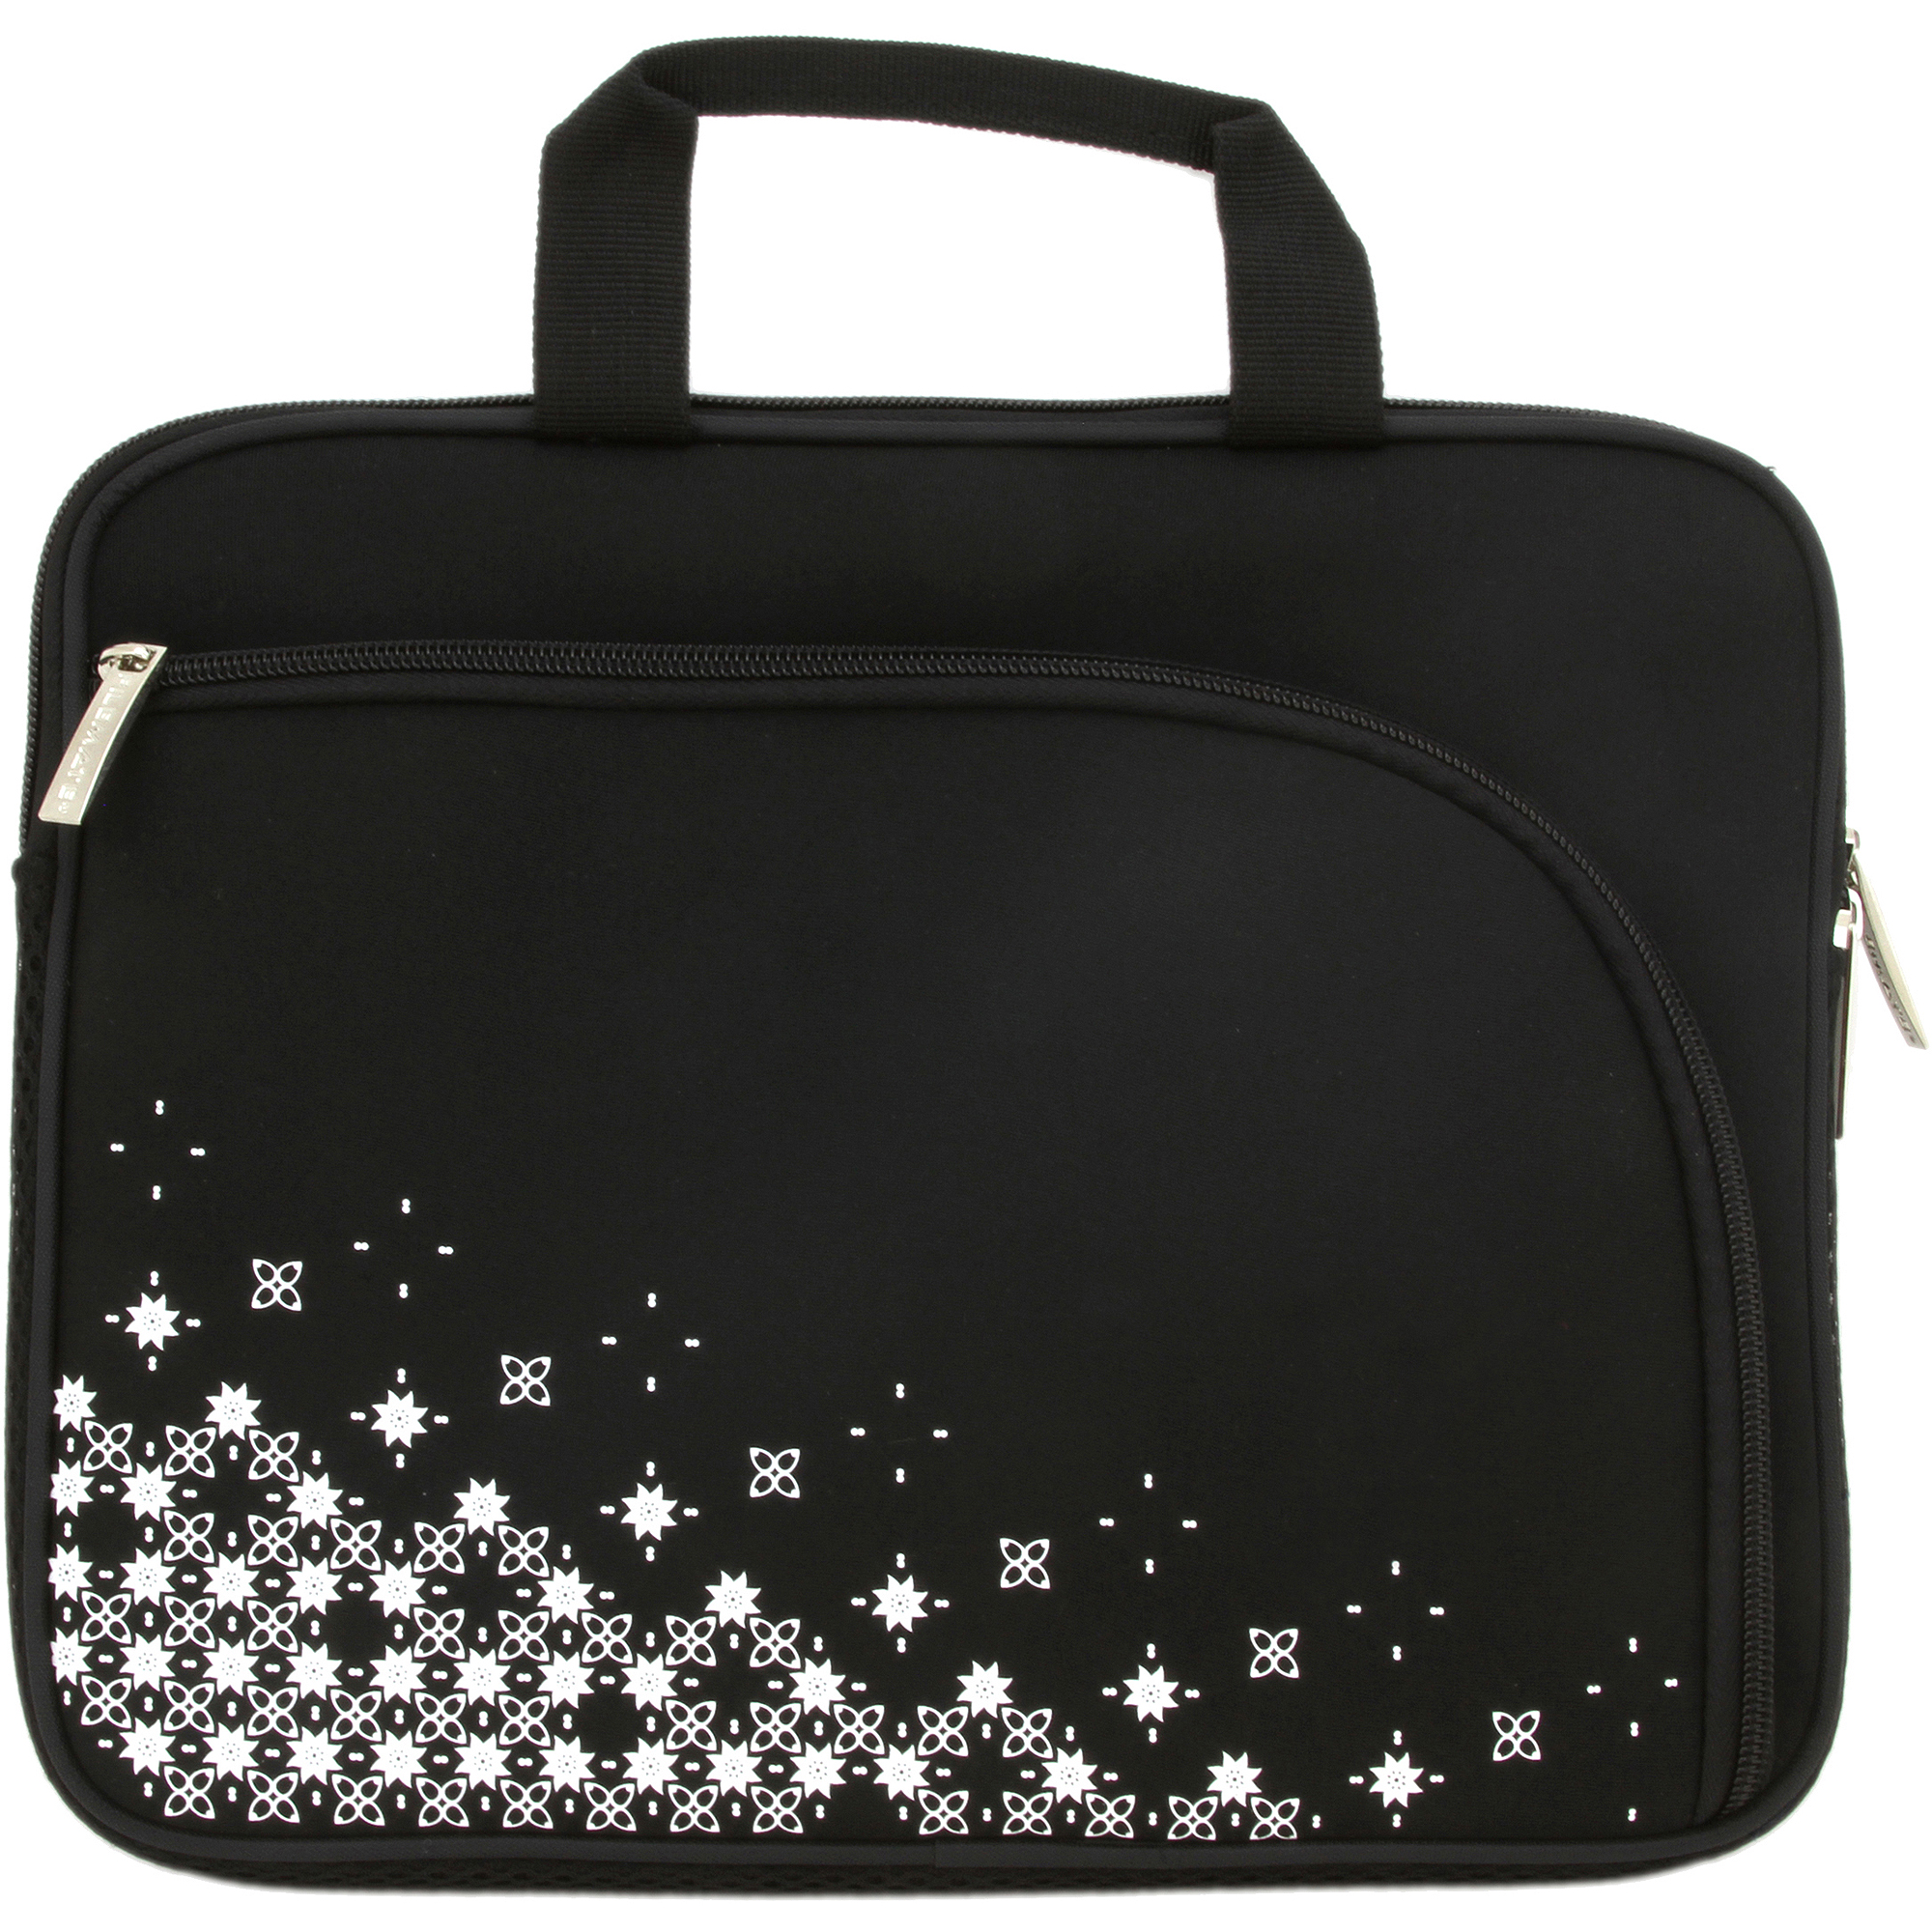 Filemate Imagine Series 10-in G810 Netbook/Tablet Carrying Case Black with Pattern